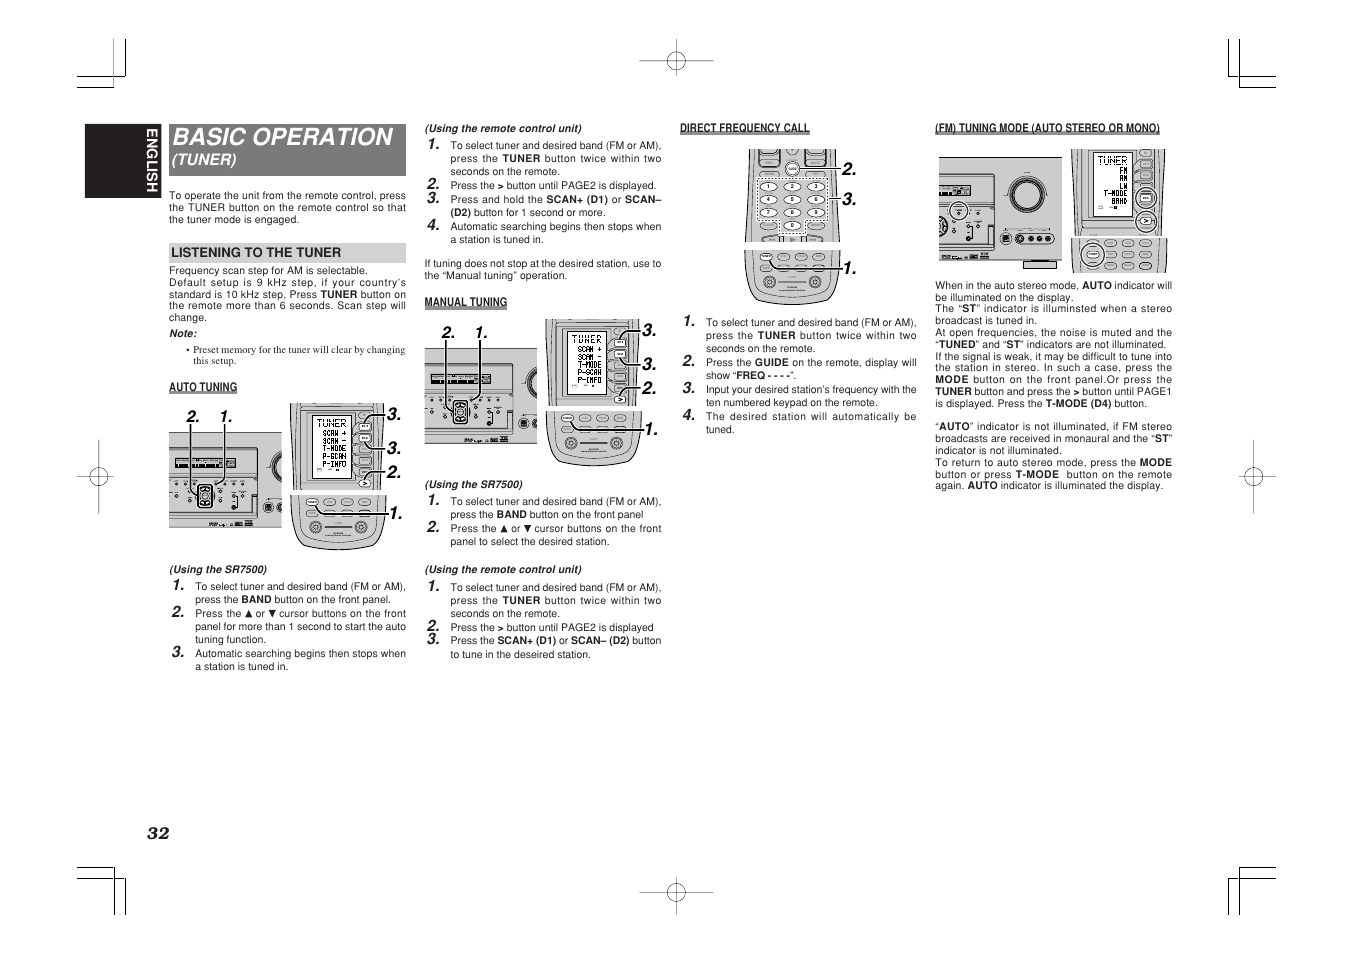 basic operation marantz sr7500 user manual page 36 58 rh manualsdir com Marantz SR4200 Receiver A V Marantz SR7500 Problem